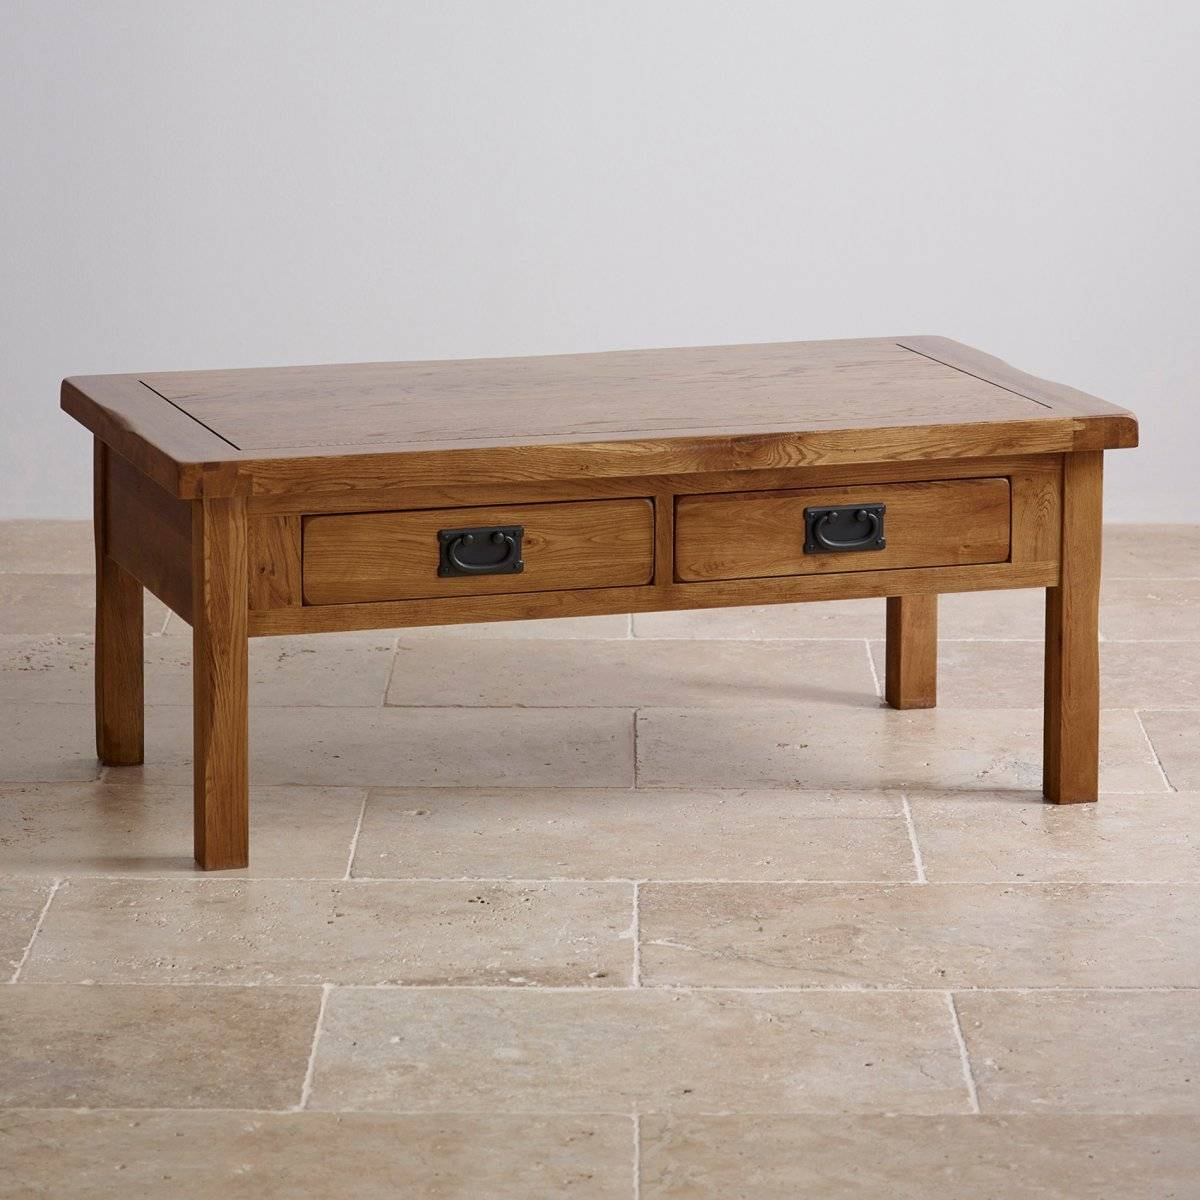 Original Rustic 4 Drawer Coffee Table In Solid Oak inside Oak Furniture Coffee Tables (Image 11 of 15)